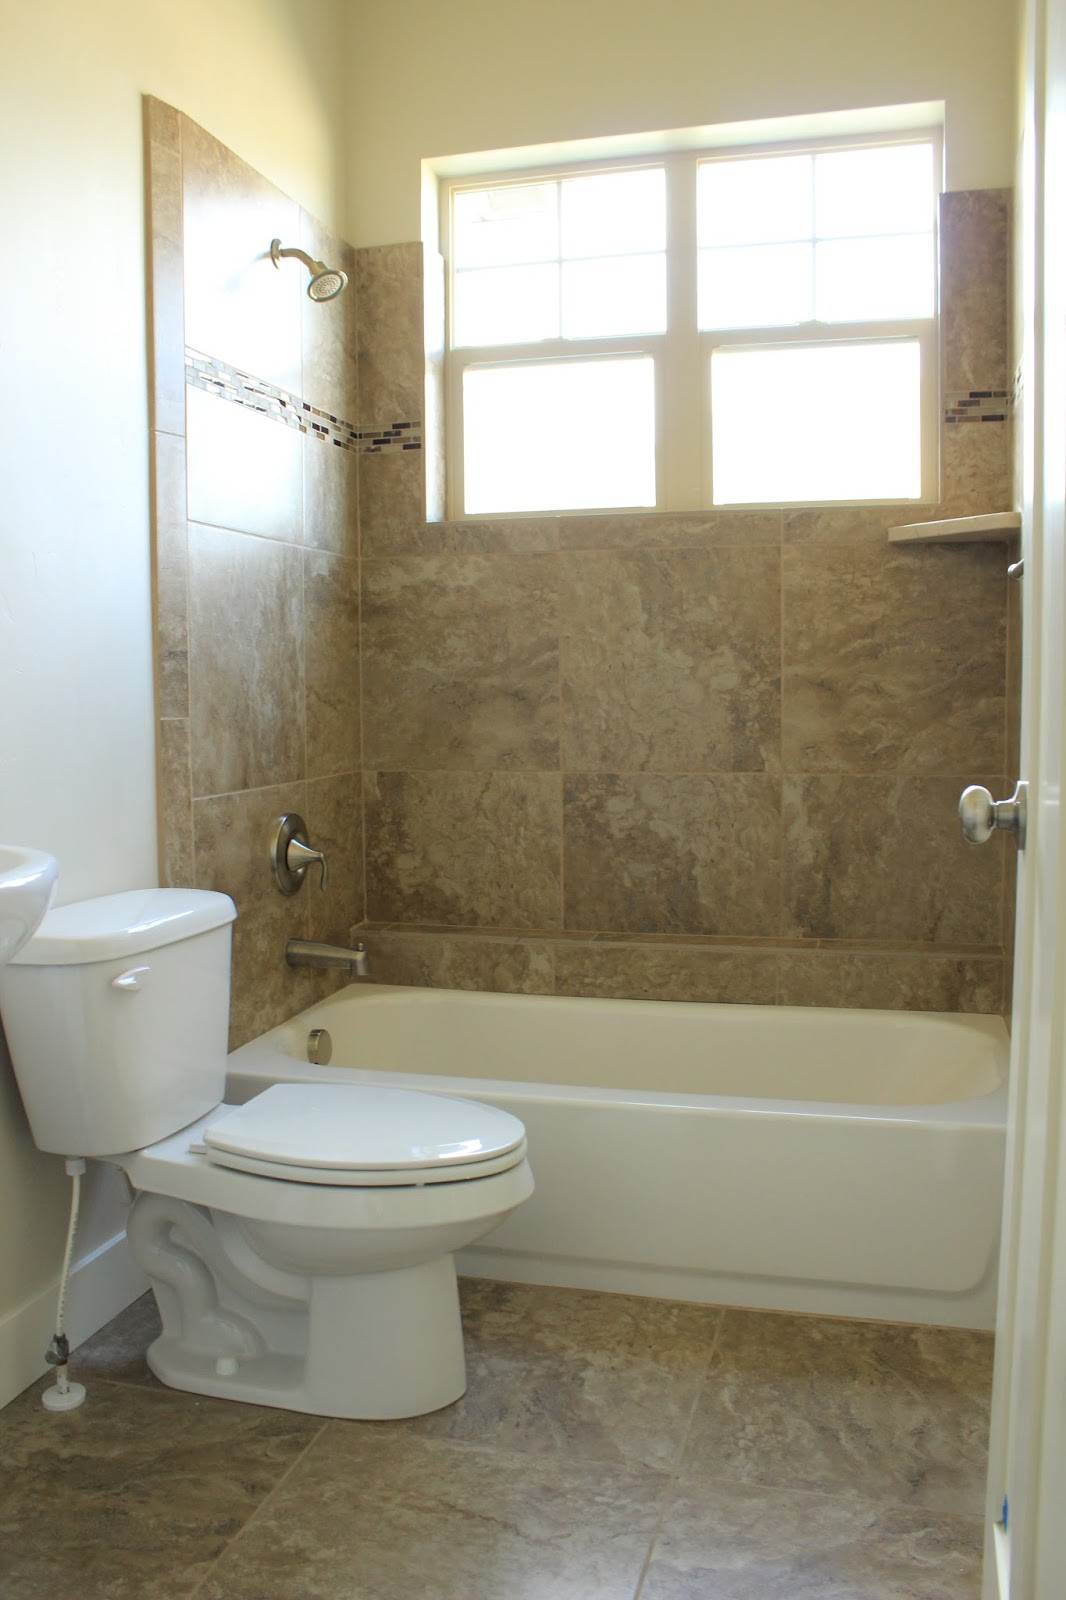 emser tile flooring and wall plus bath up and sit closet for bathroom ideas